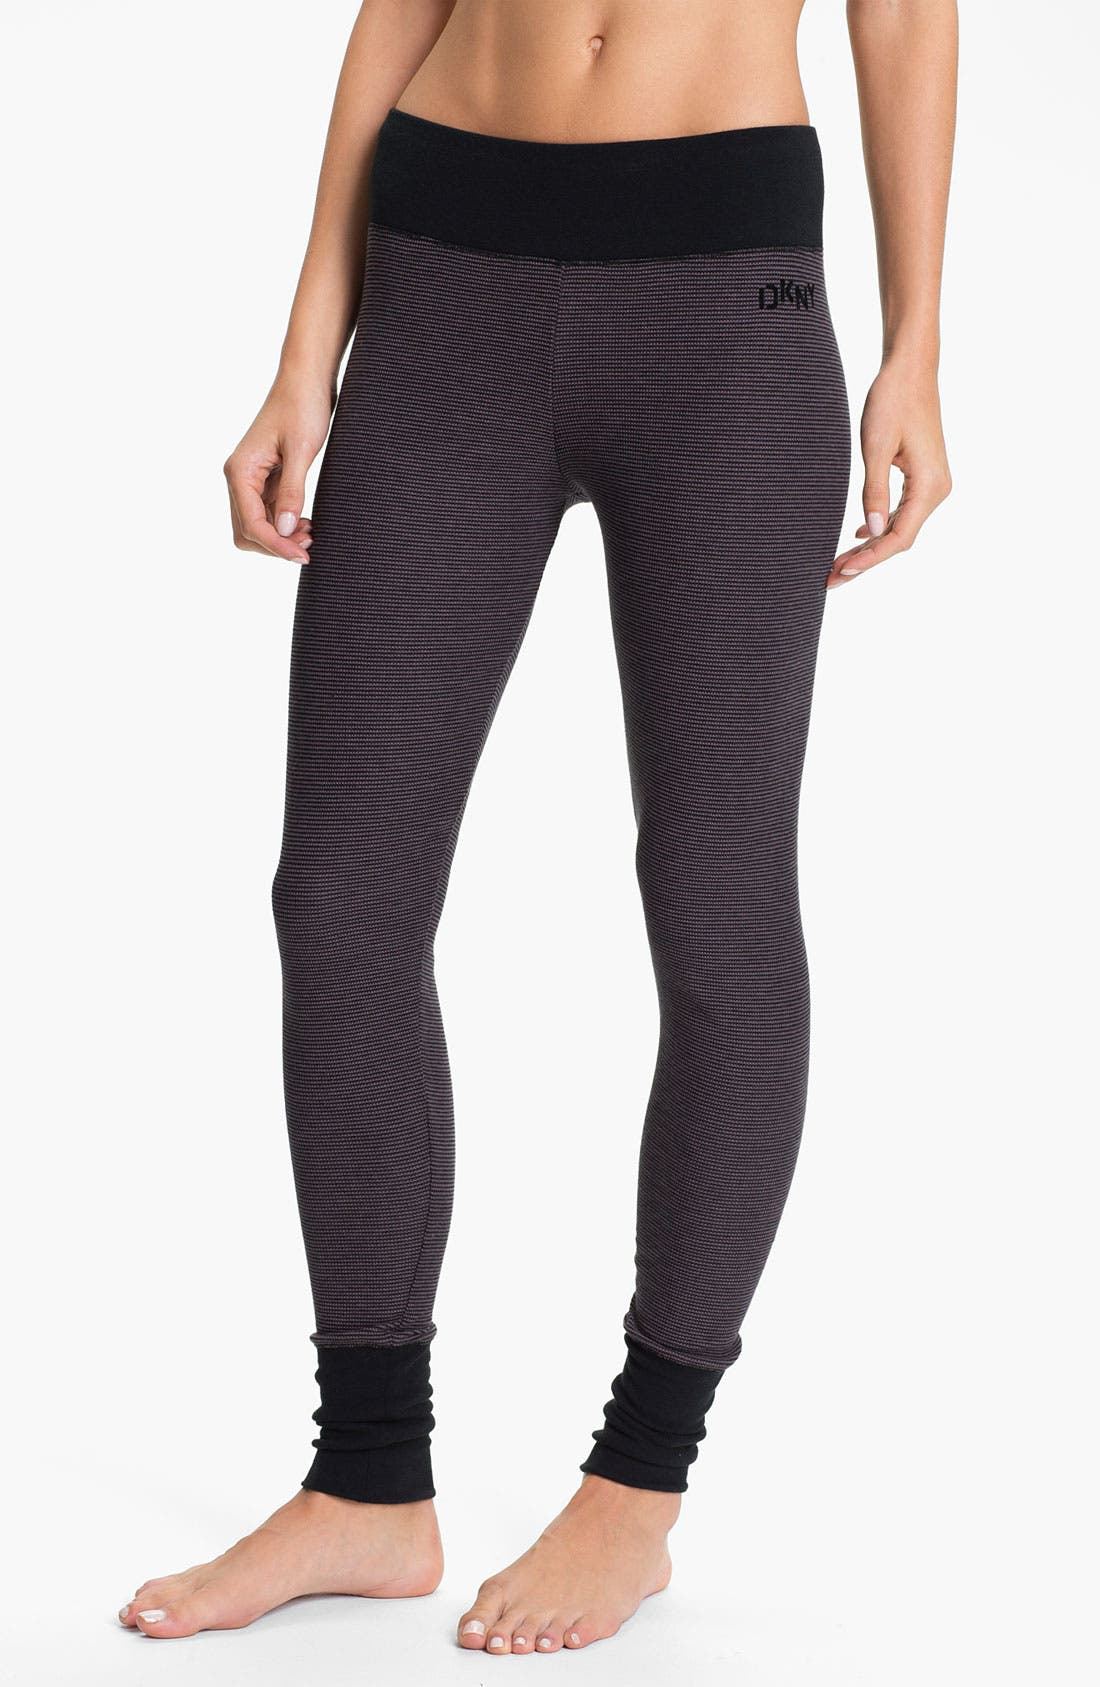 Alternate Image 1 Selected - DKNY Base Layer Cuff Leggings